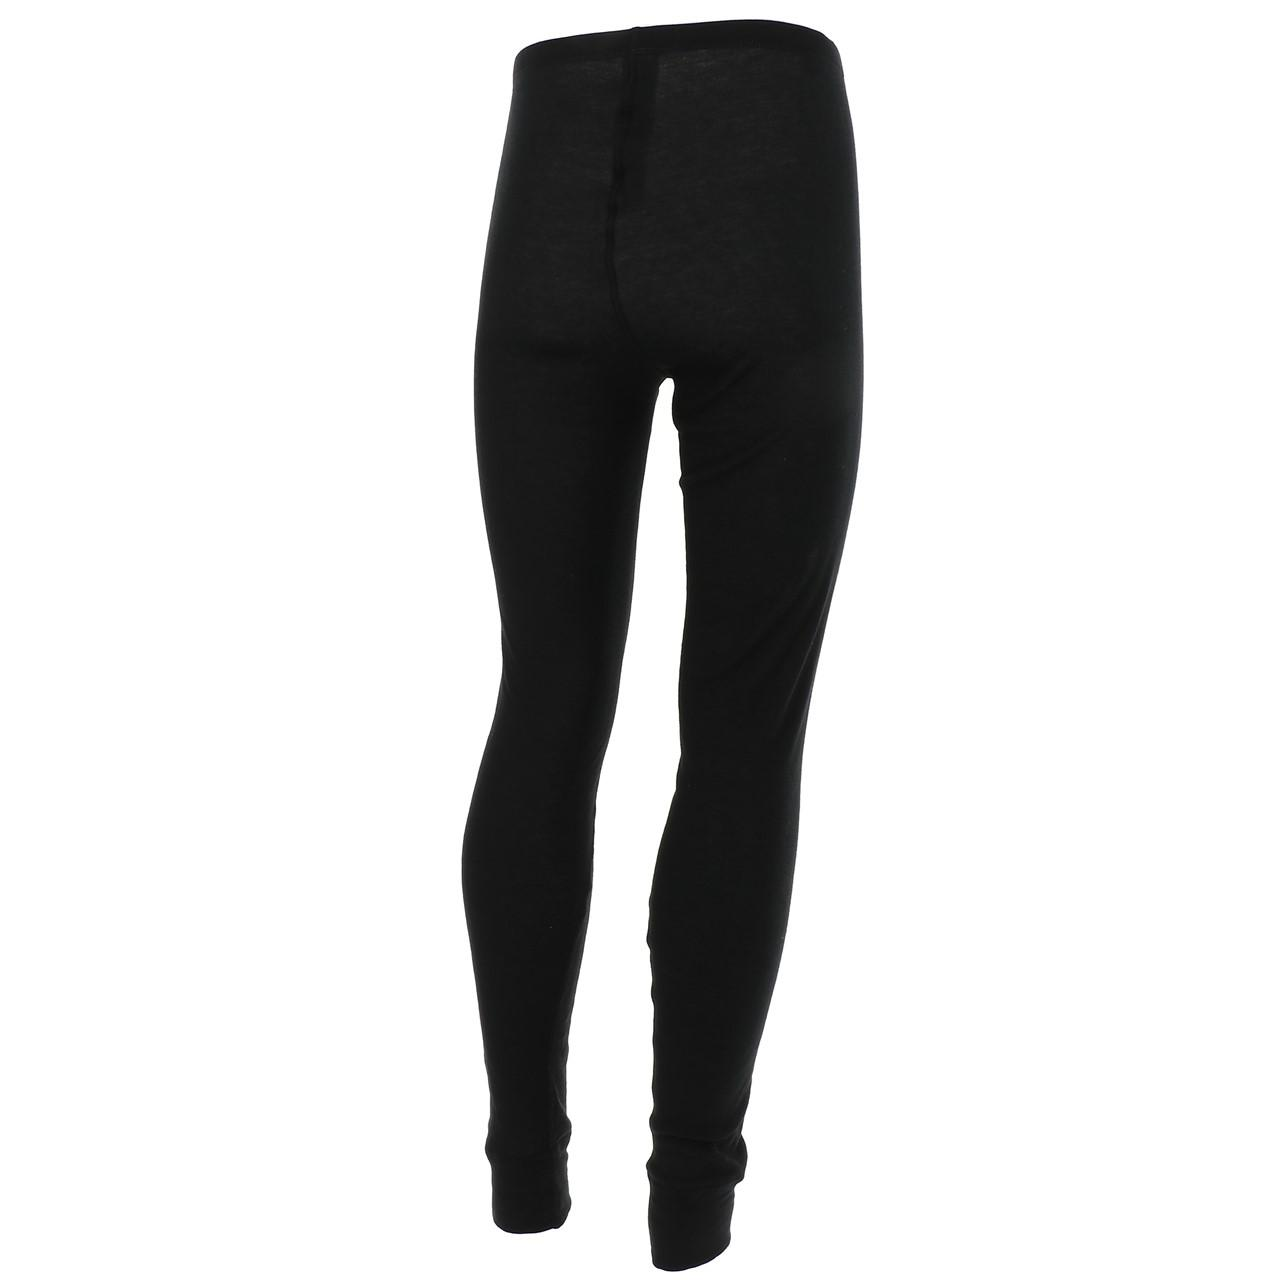 Tights-Thermal-Hot-Winter-Odlo-Warm-Black-Tights-Black-85327-New thumbnail 5